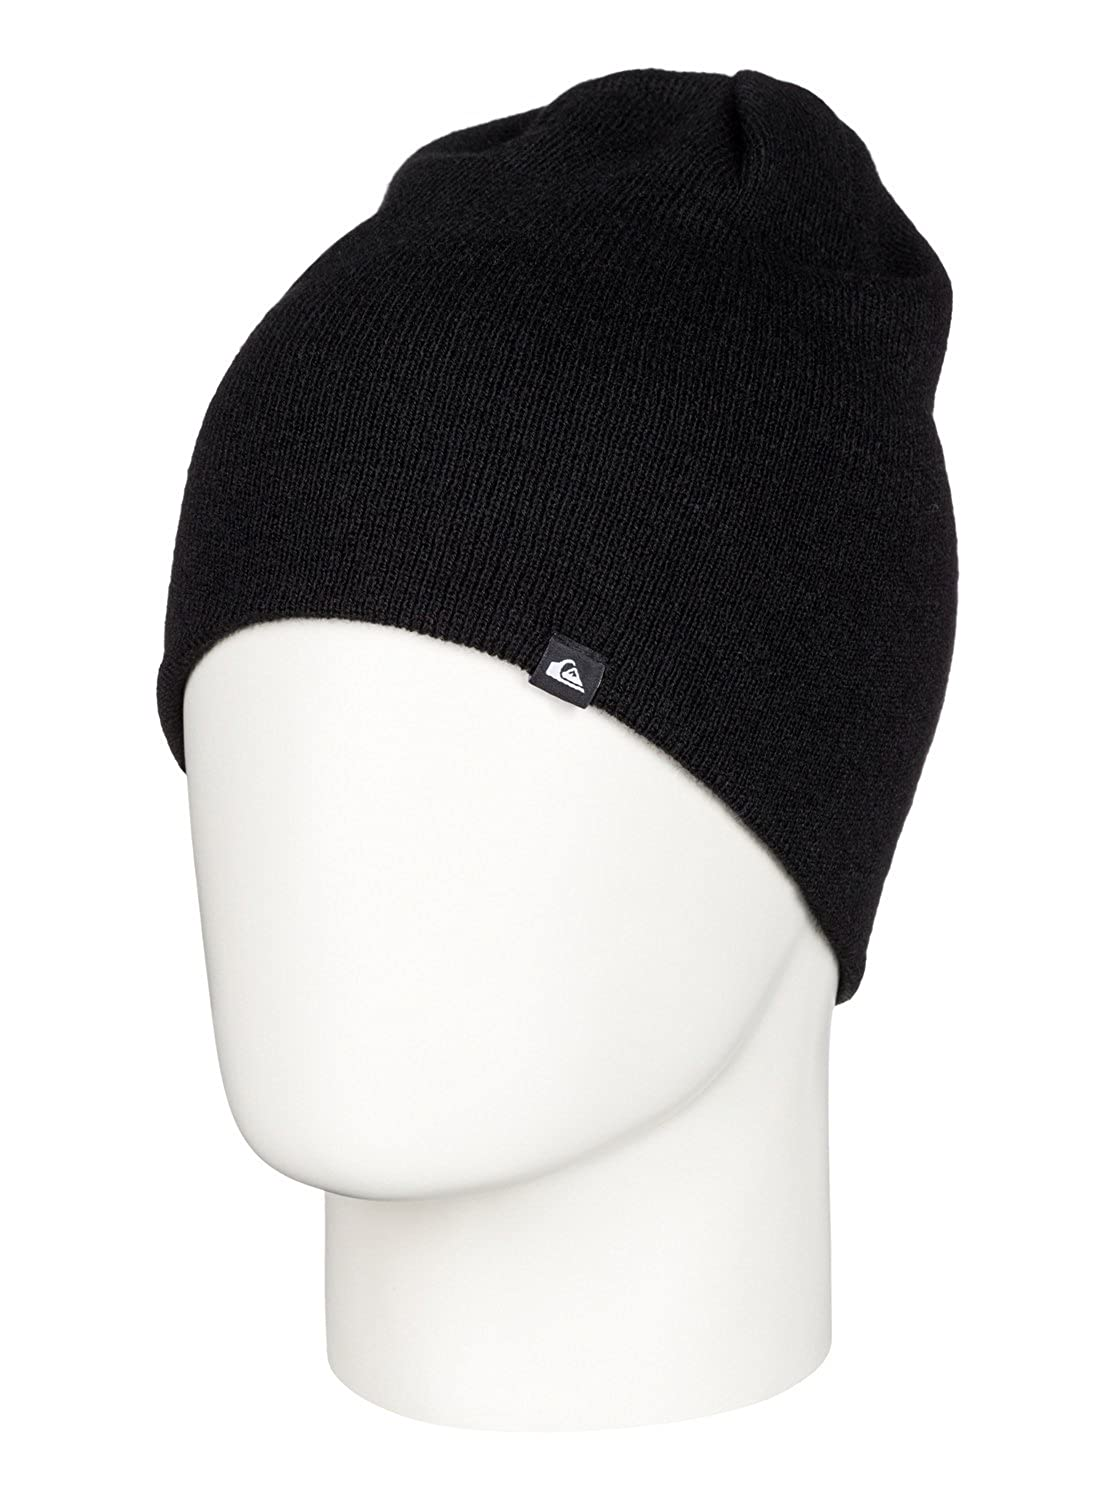 Amazon.com  Quiksilver Boys Preference - Beanie Beanie Black One Size  Roxy  Quiksilver  Sports   Outdoors c3b6c4187e19